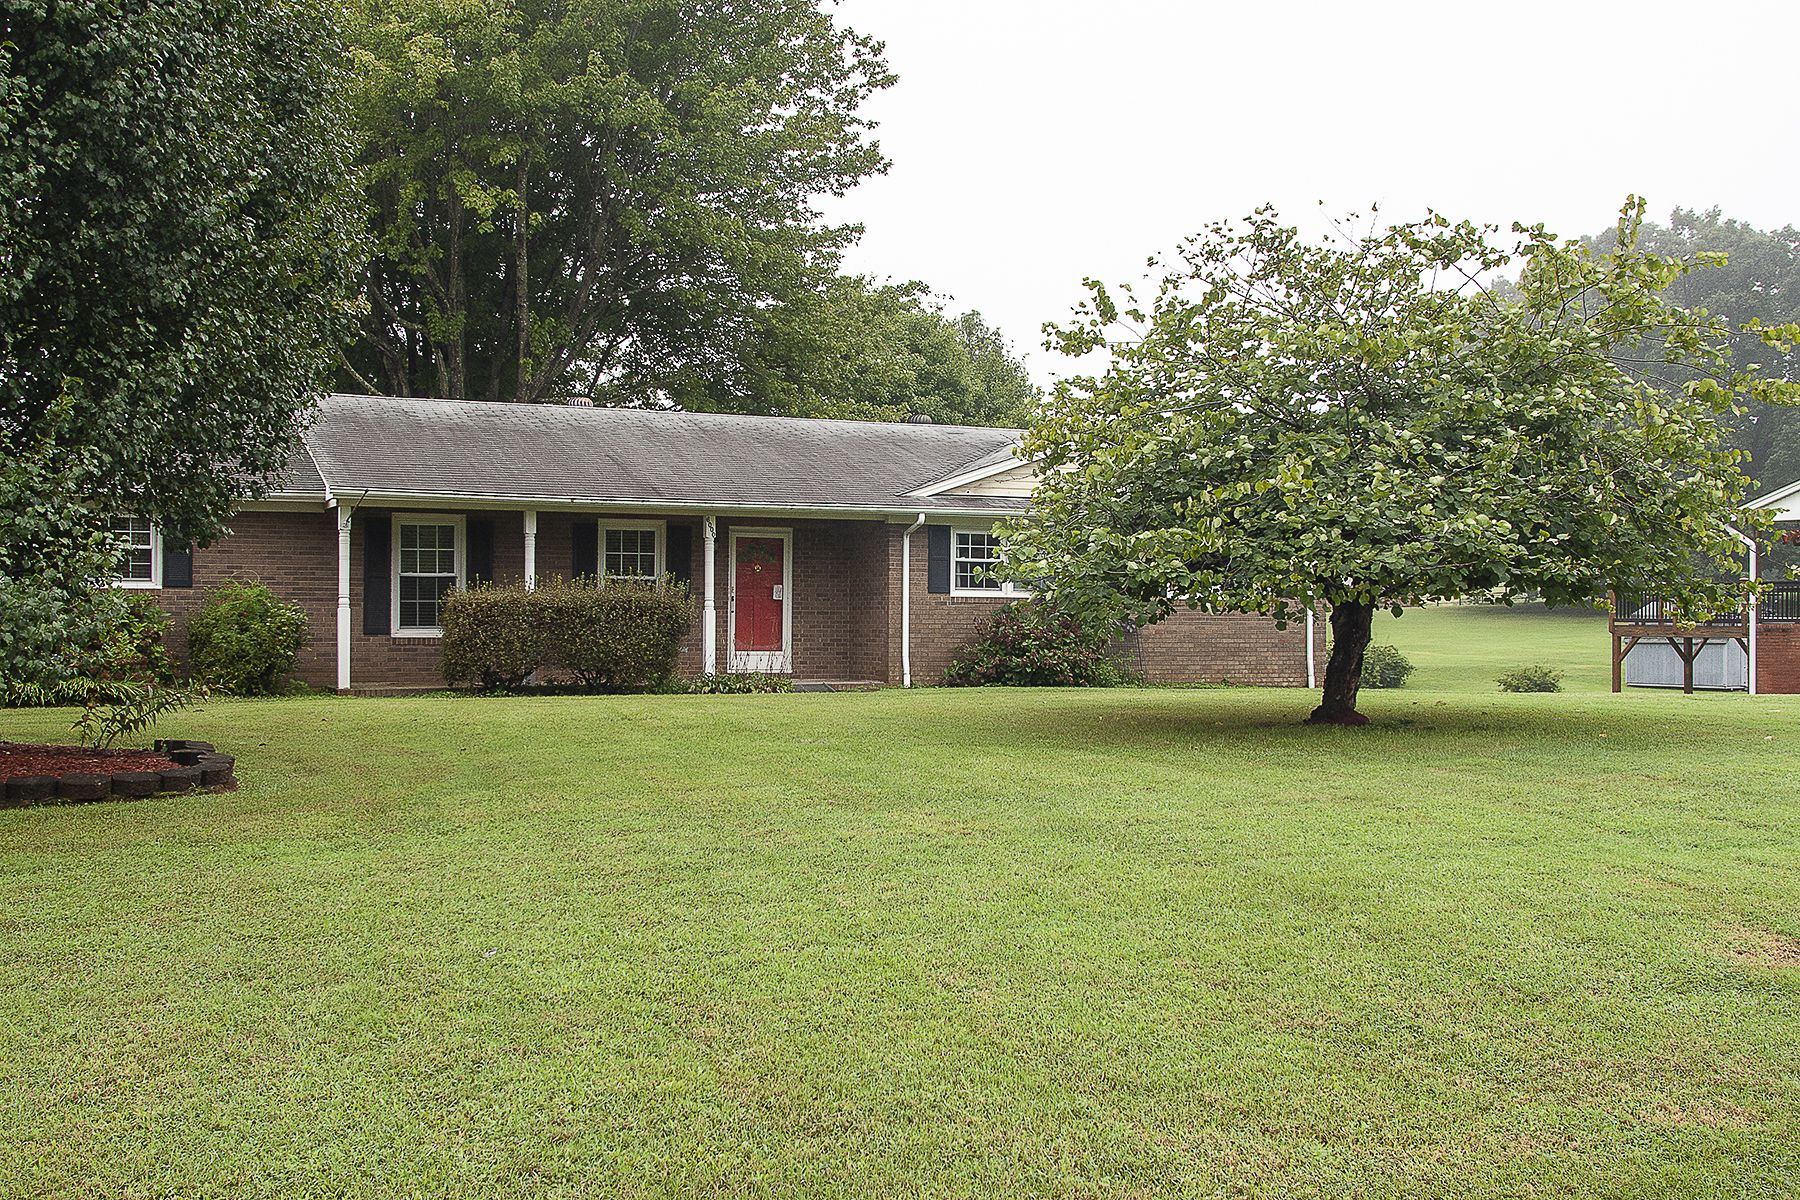 House For Sale Kernersville 6000 Old Valley School Rd Kernersville Nc For Details Call Barbara At 336 473 6460 House Styles Realtors